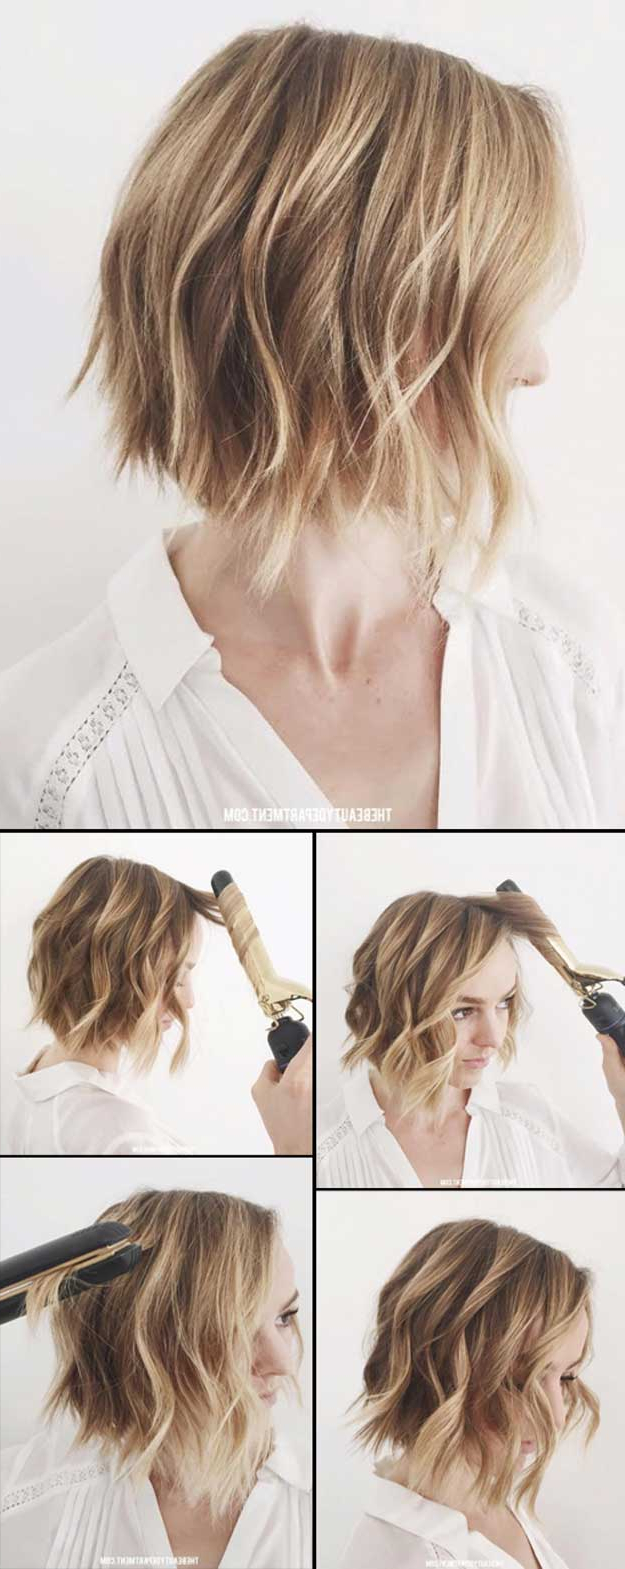 33 Best Hairstyles For Teens – The Goddess Throughout Cool Hairstyles For Short Hair Girl (View 8 of 25)